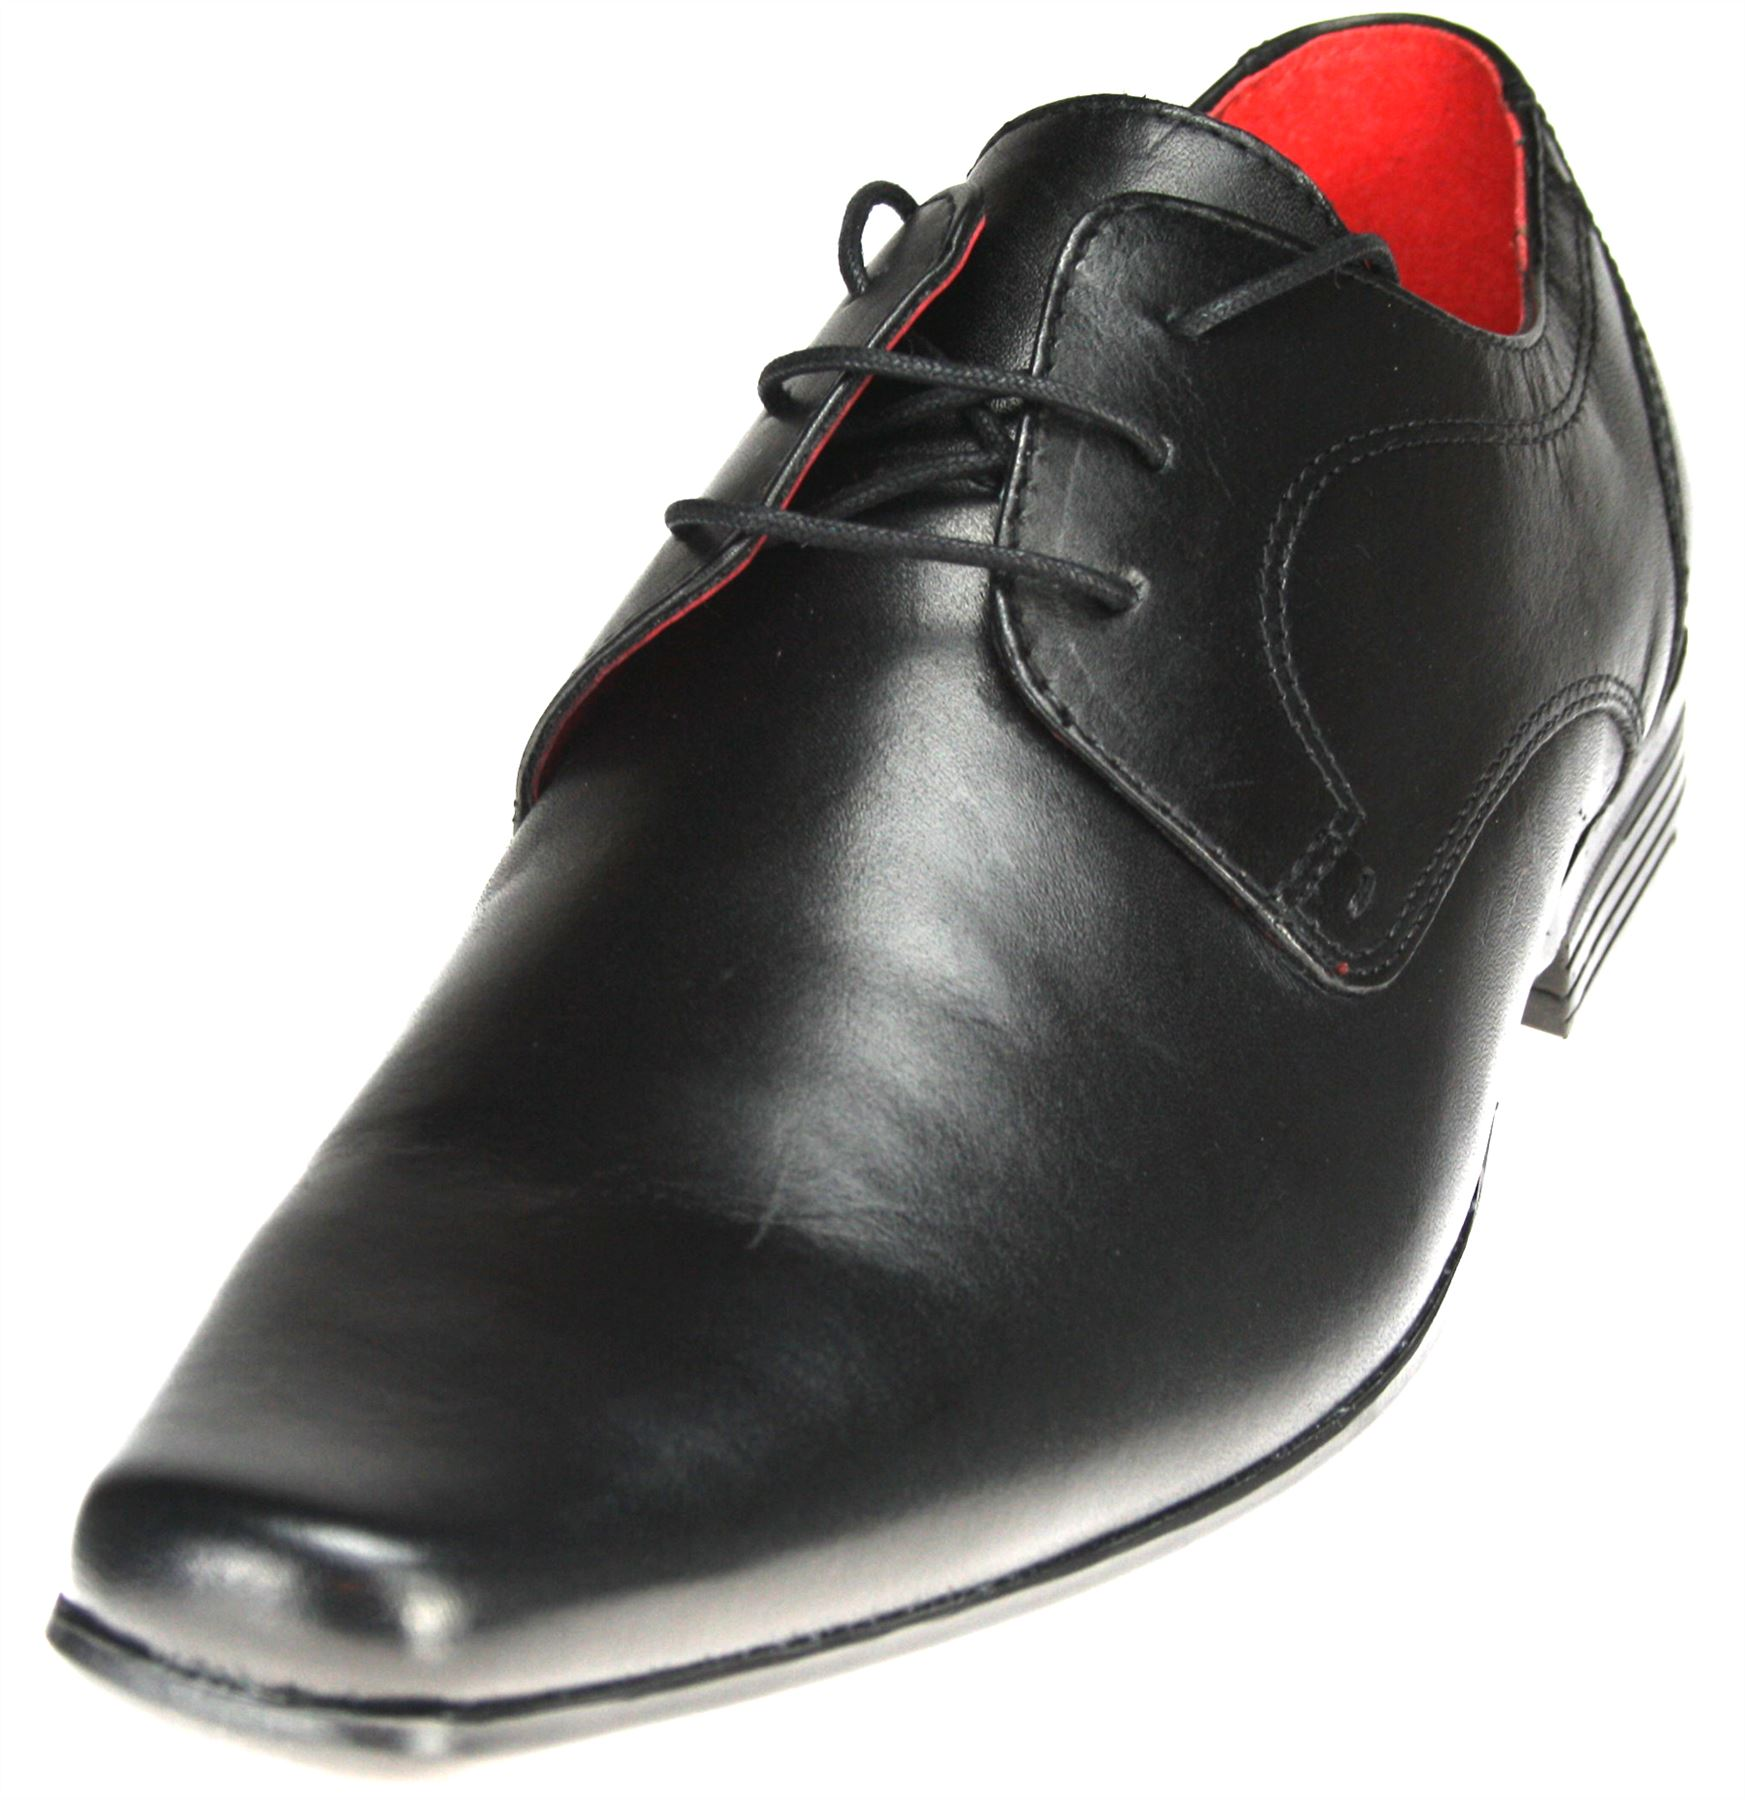 Mens Leather Dress Shoe Warehouse